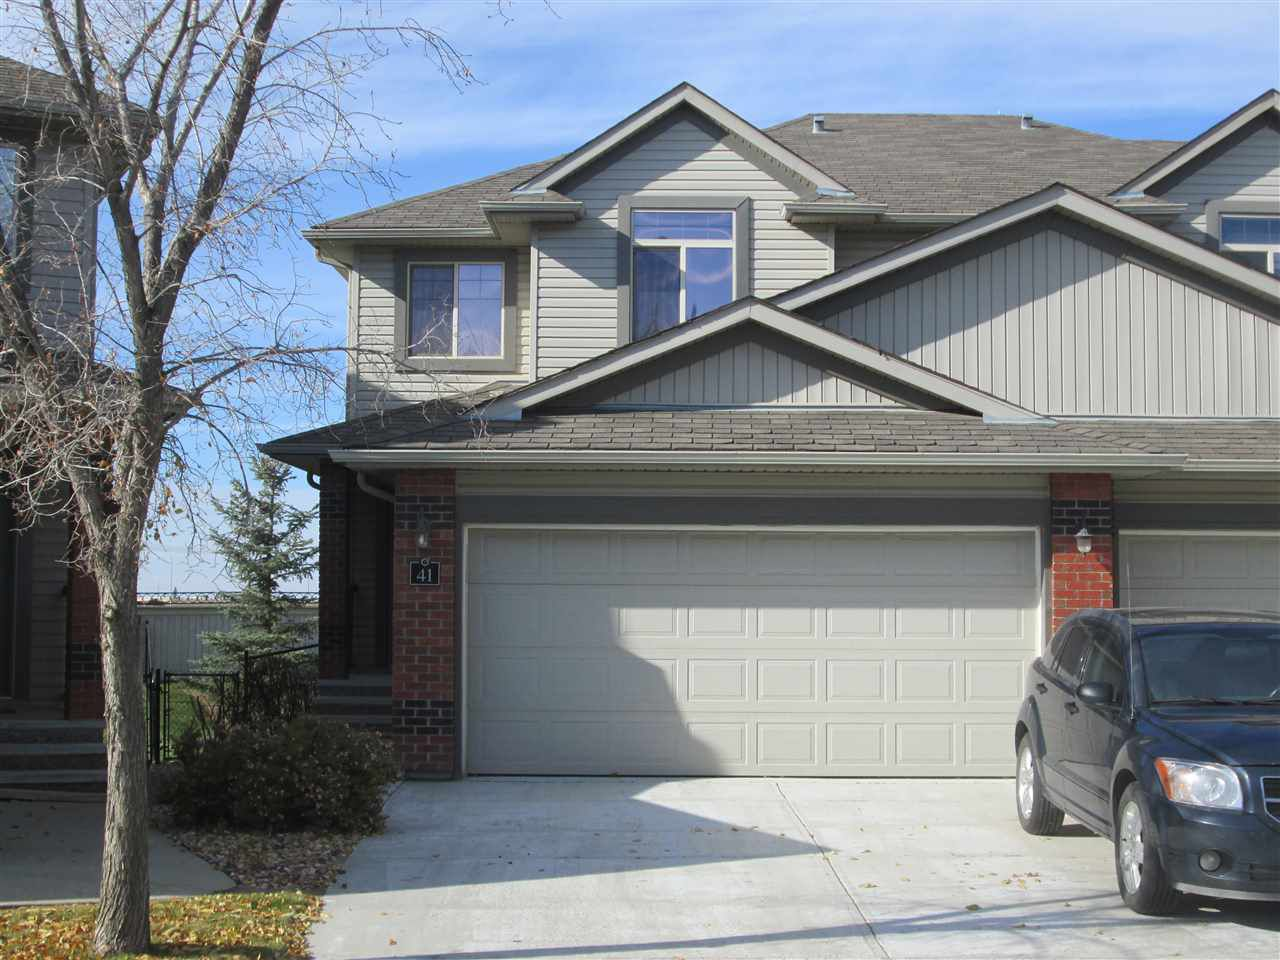 Main Photo: 41 1128 156 Street in Edmonton: Zone 14 House Half Duplex for sale : MLS®# E4131794